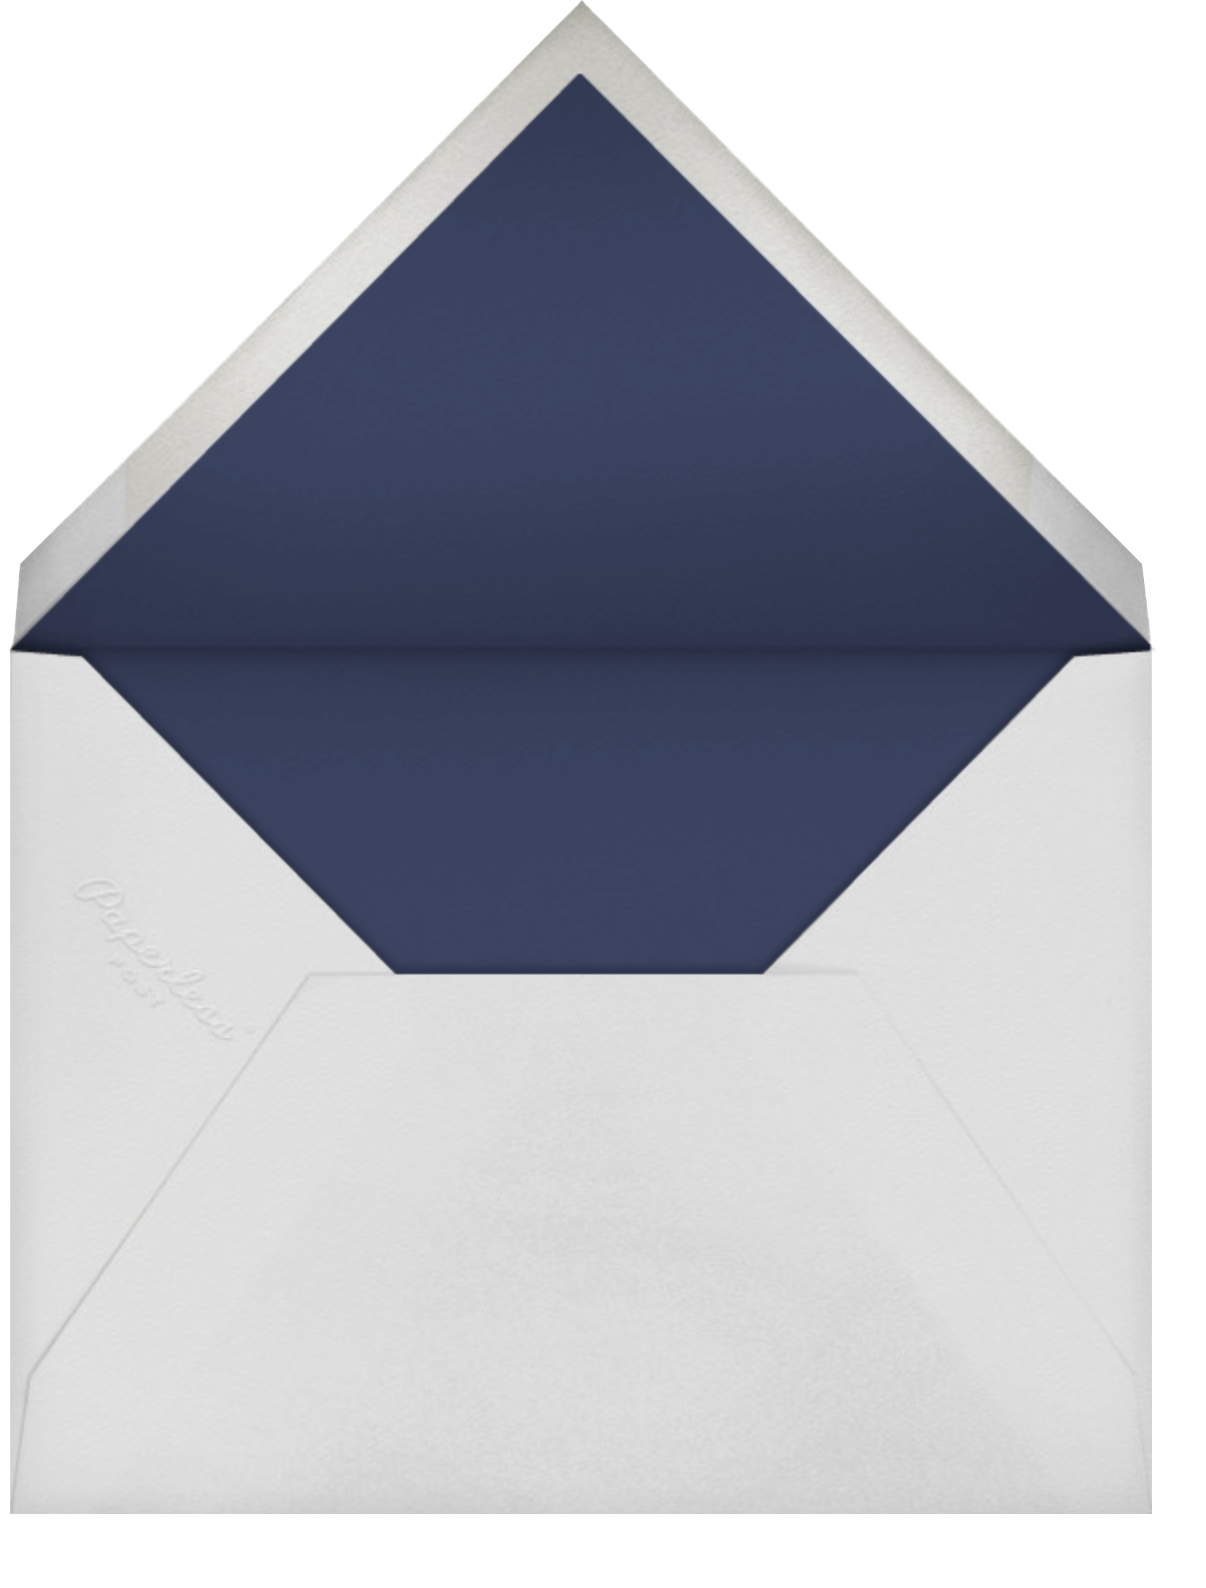 Miss Cricket (Stationery) - Navy - Mr. Boddington's Studio - Personalized stationery - envelope back